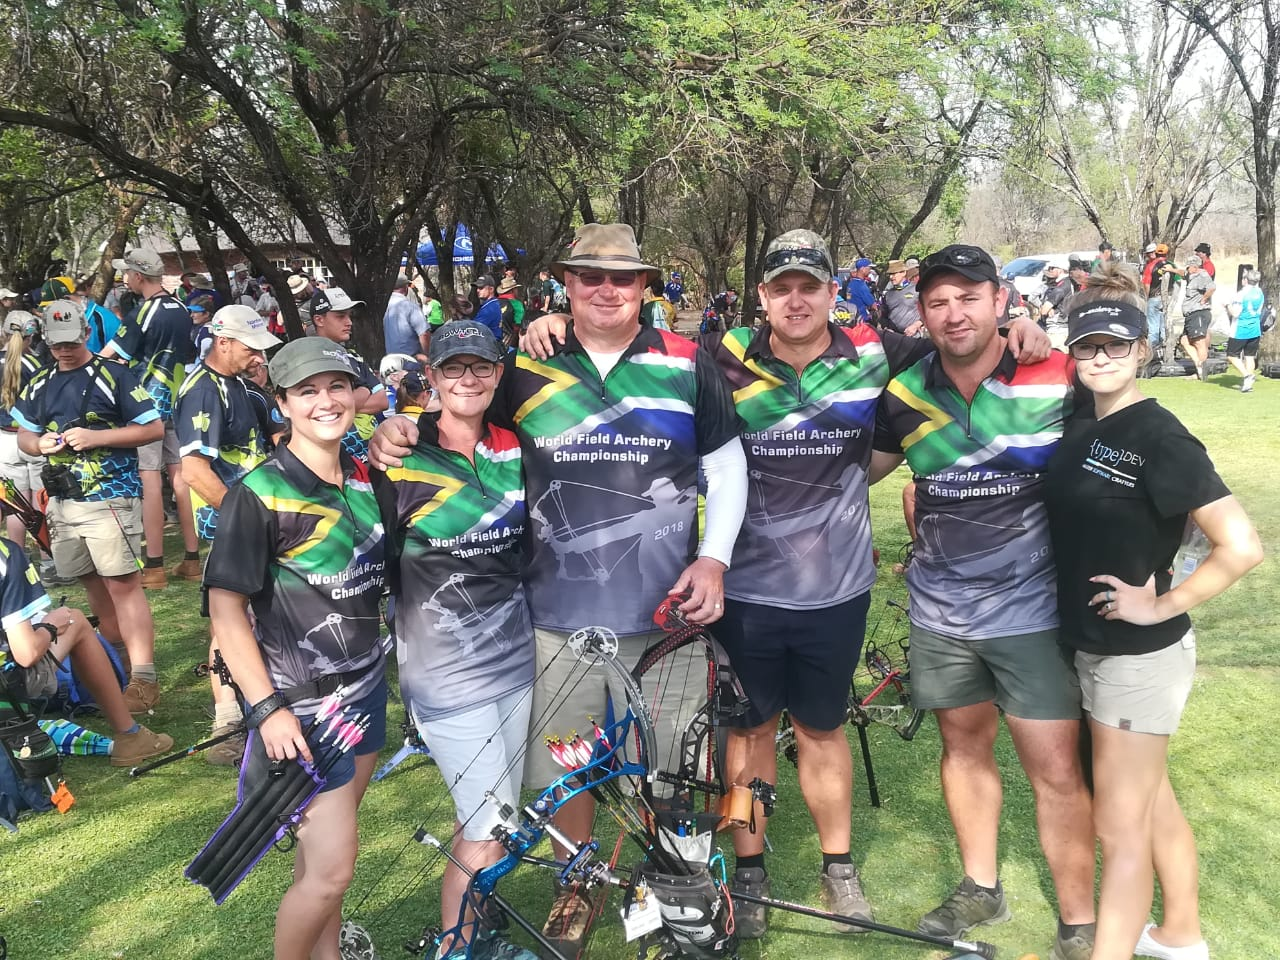 Polygraph Examiners representing South Africa at the International Field Archery Association World Field Archery Championship 2018